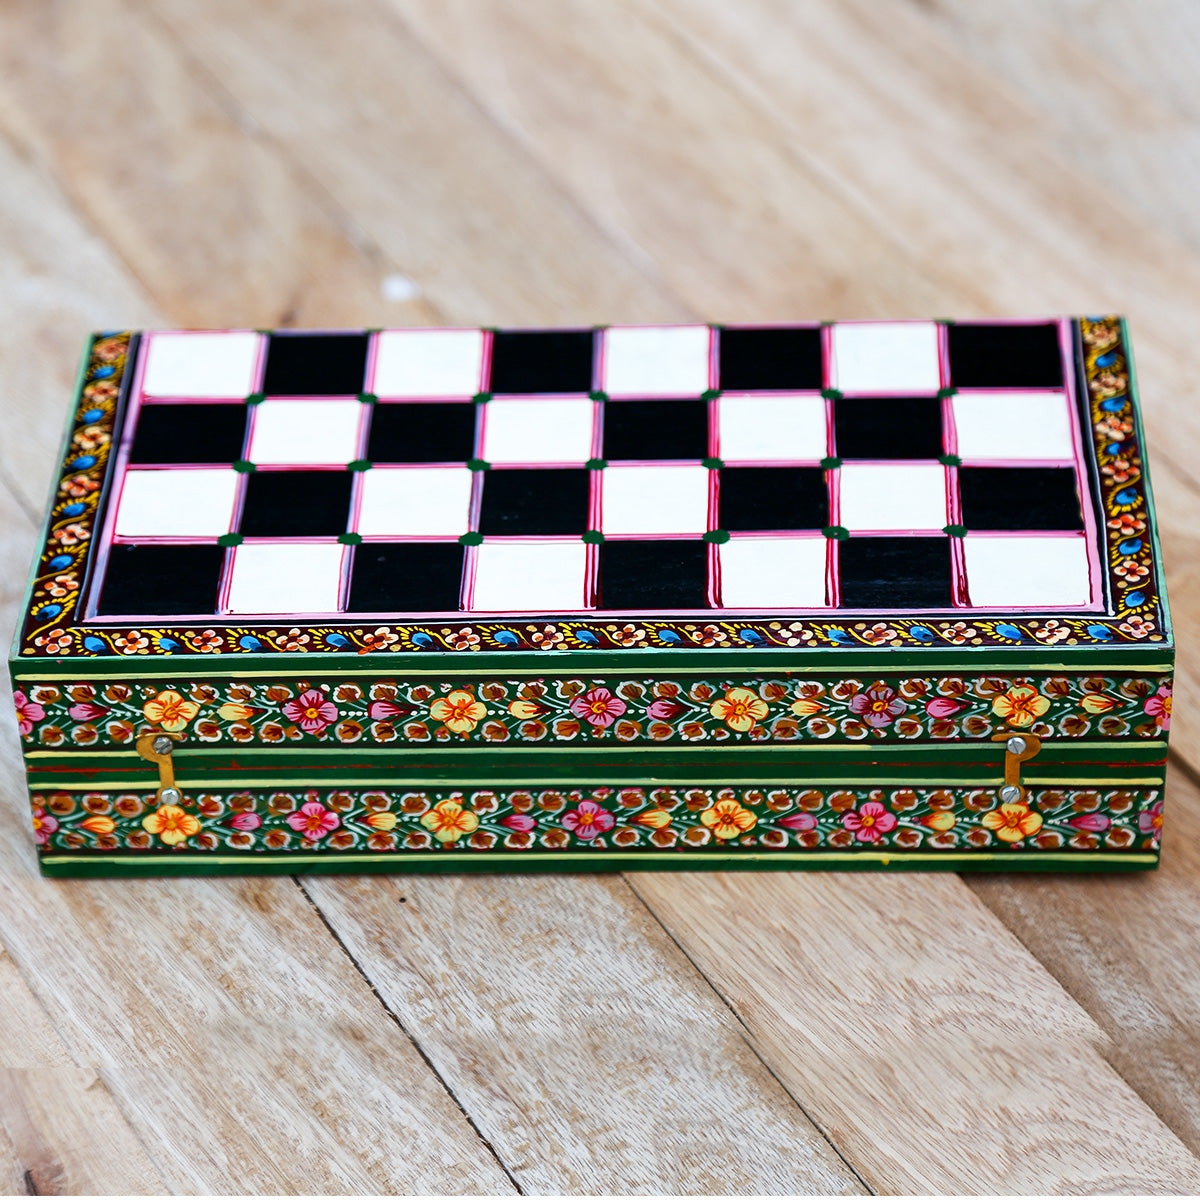 Handcrafted Wooden Chess Board from Sawantwadi